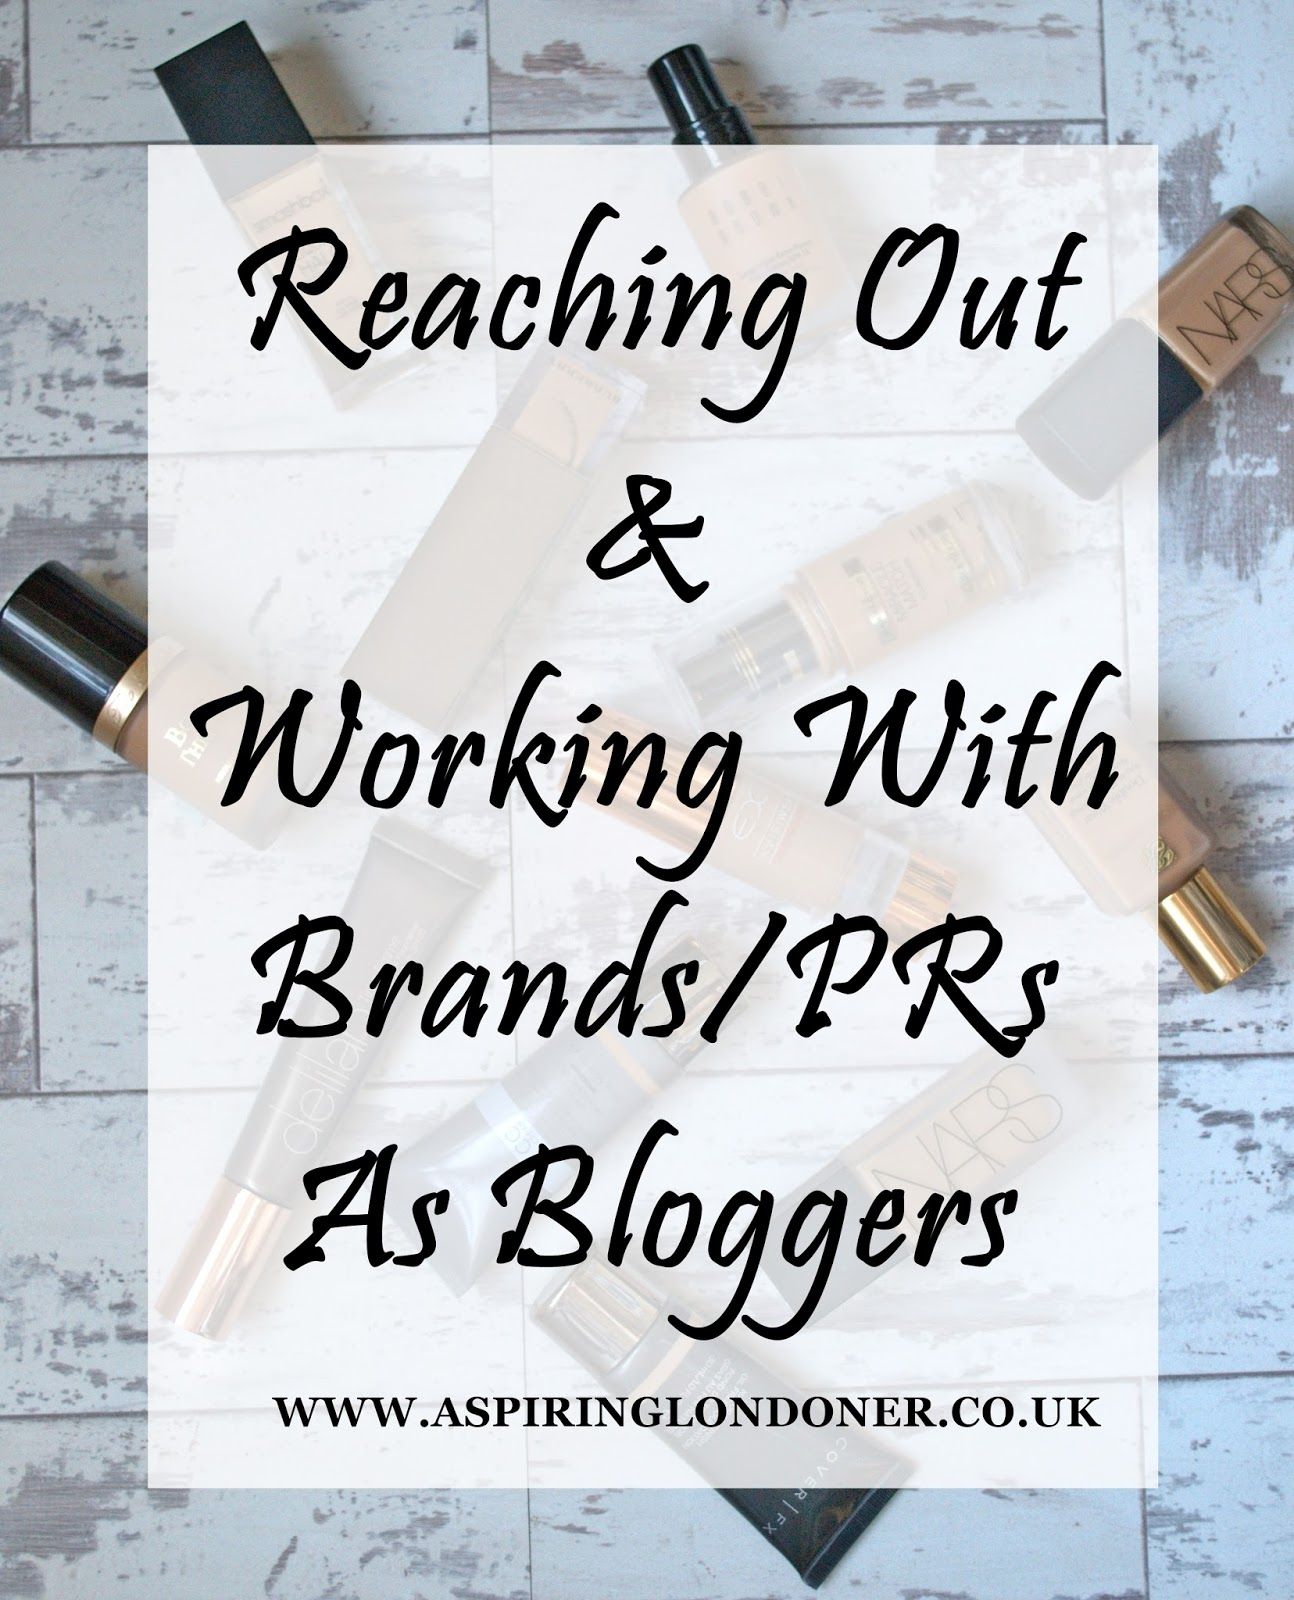 Reaching Out And Working With Brands PRs As Bloggers - Aspiring Londoner